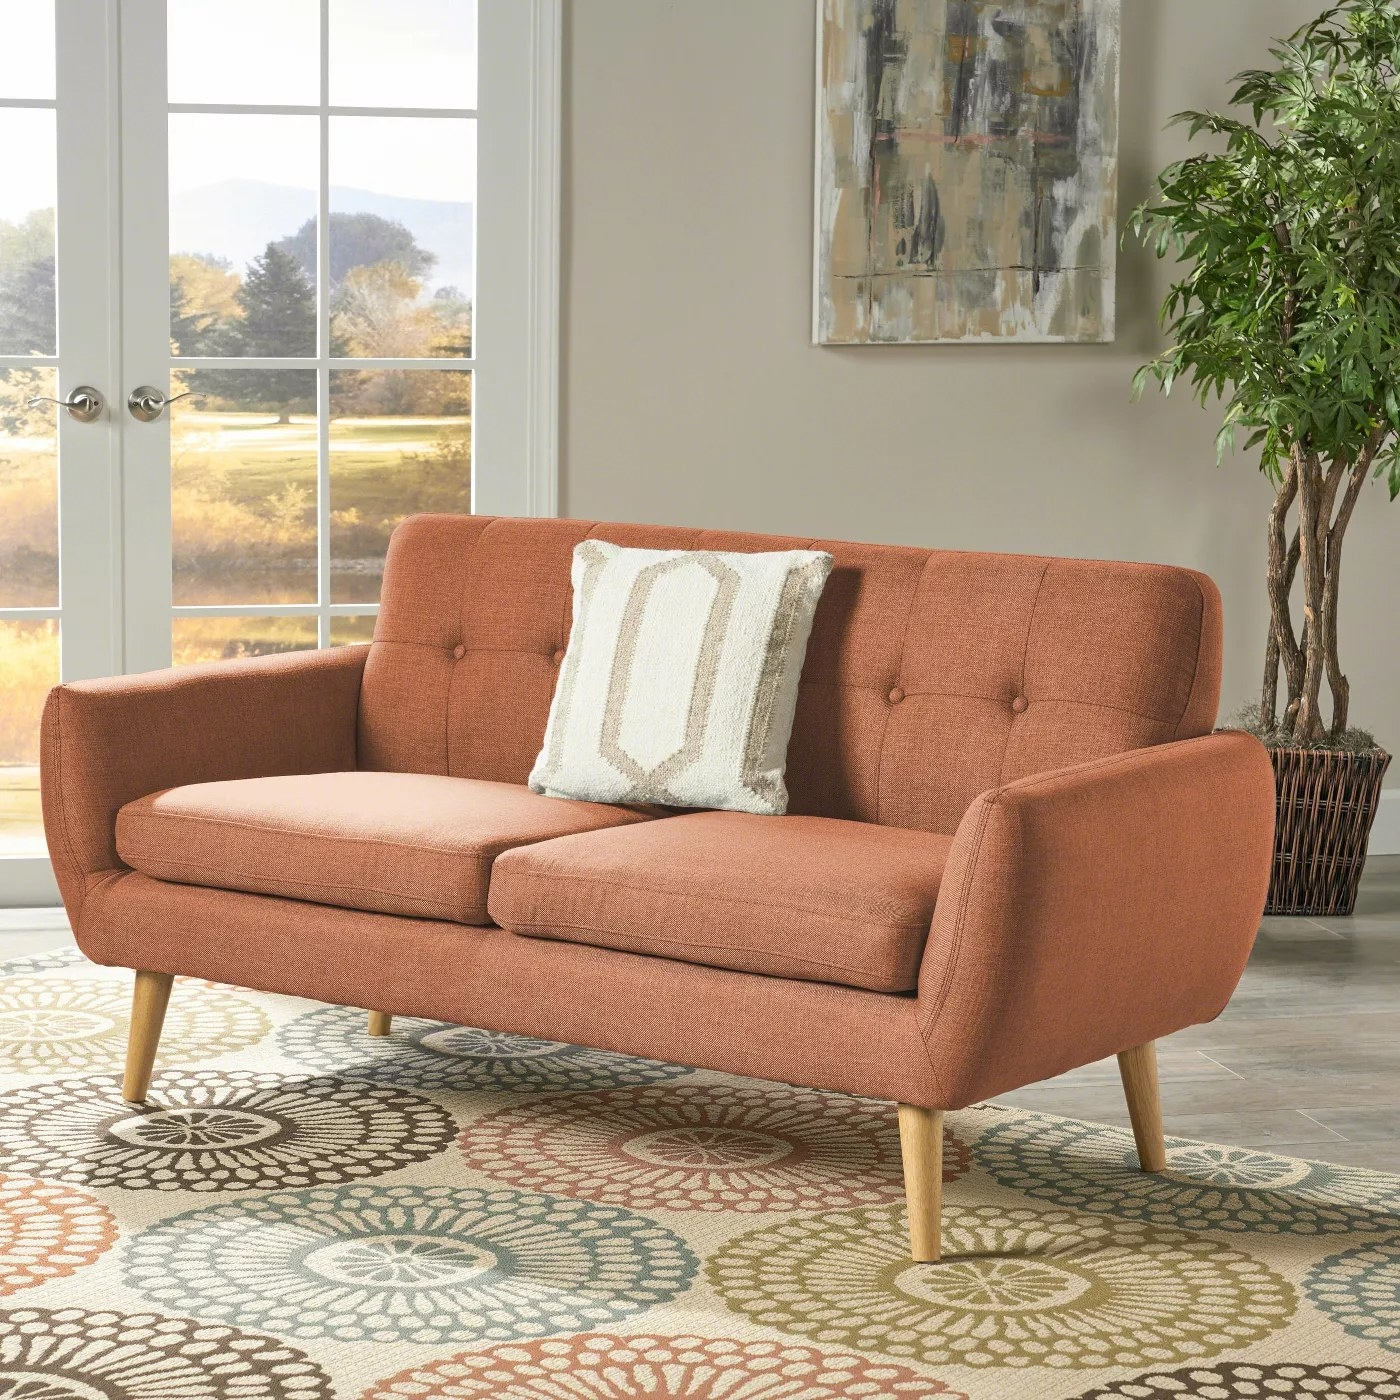 A burnt orange sofa